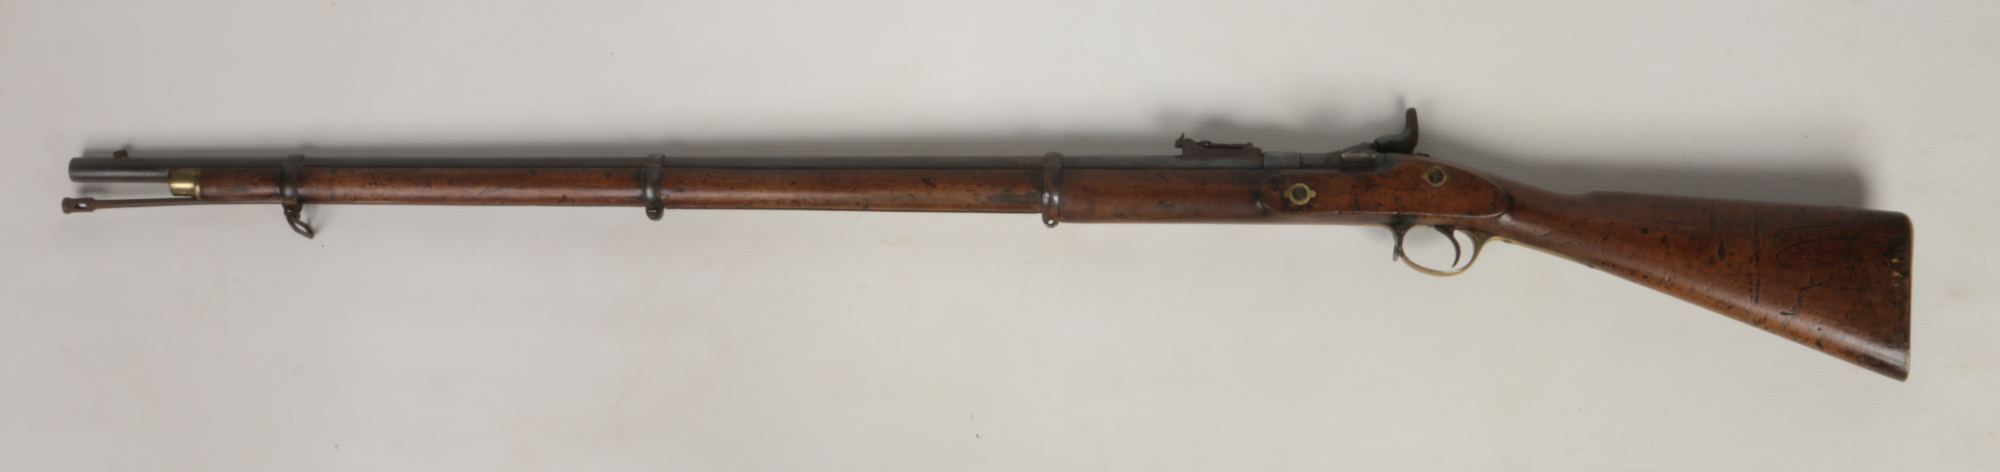 Lot 262 - A P53 Tower pattern three band percussion rifle with Schneider conversion .577. With walnut